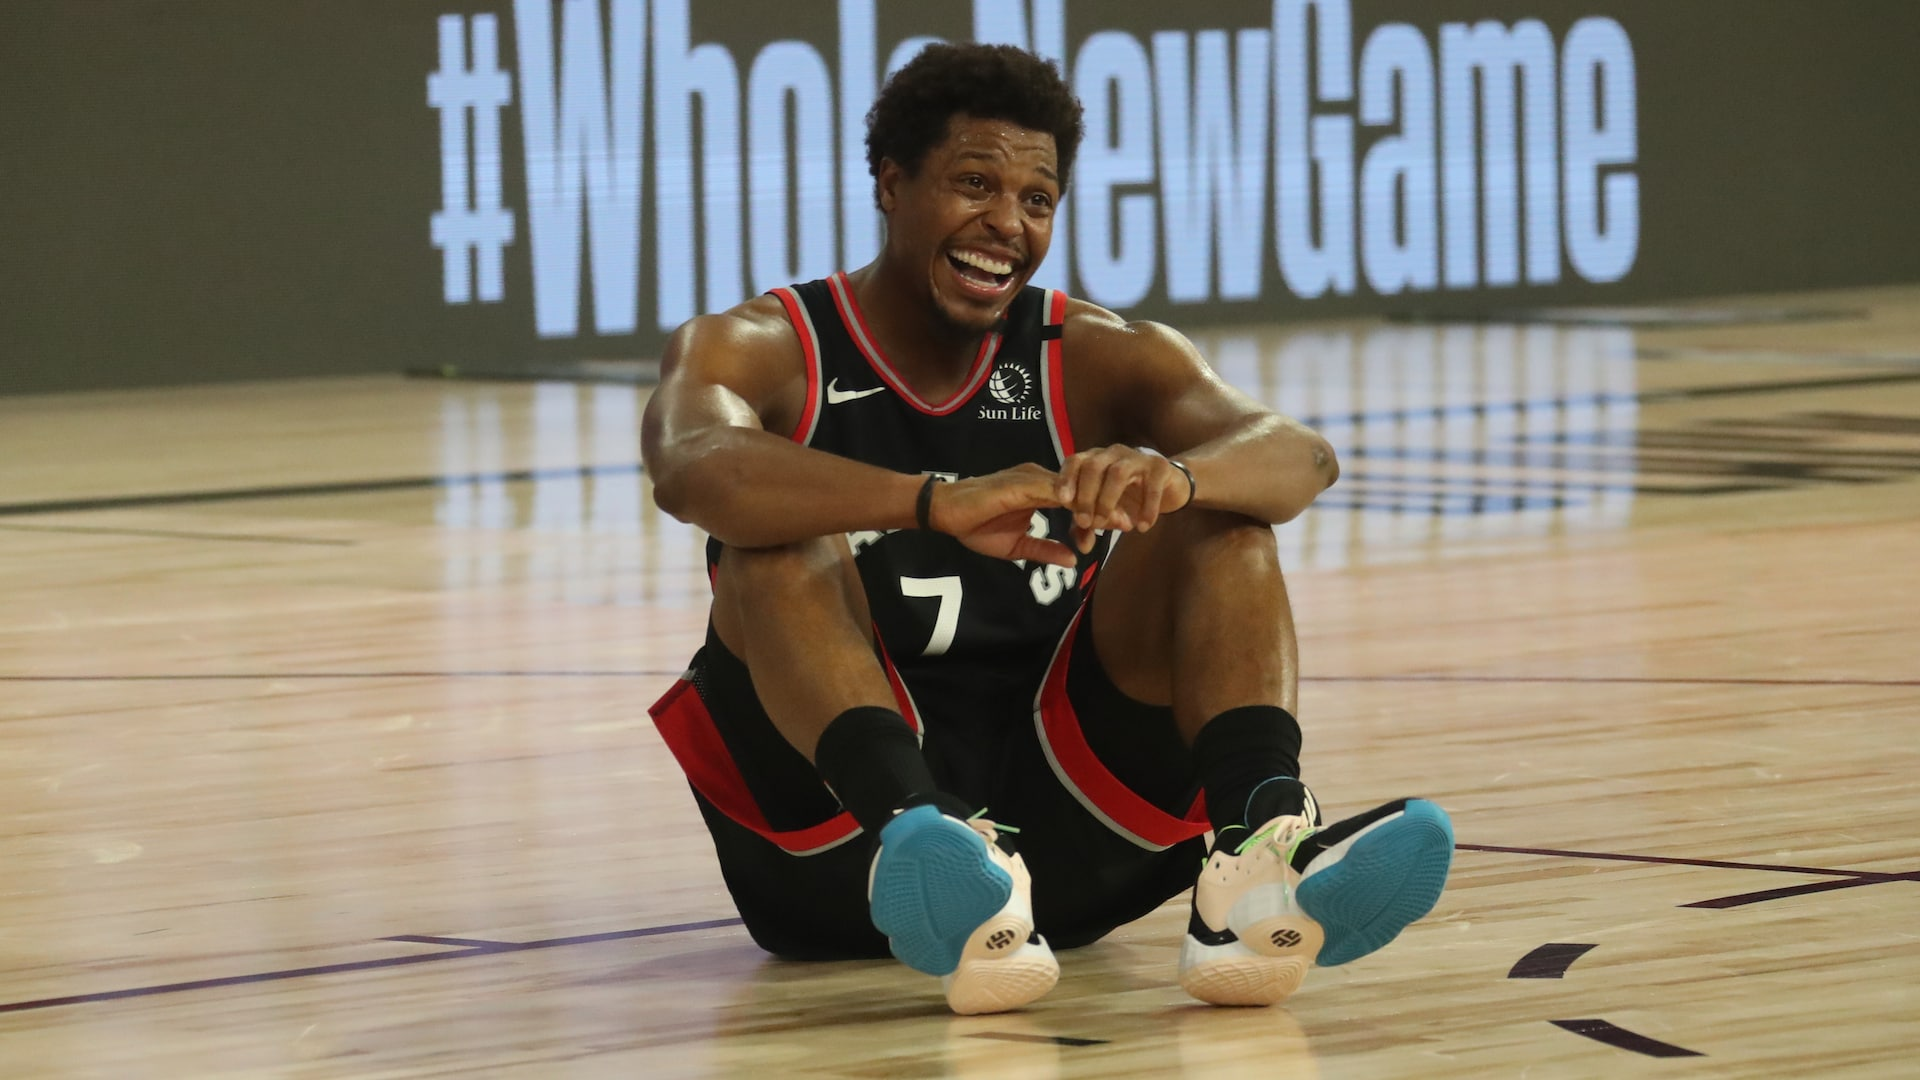 Kyle Lowry sets stage for Game 3 win with his scoring, game-winning dime